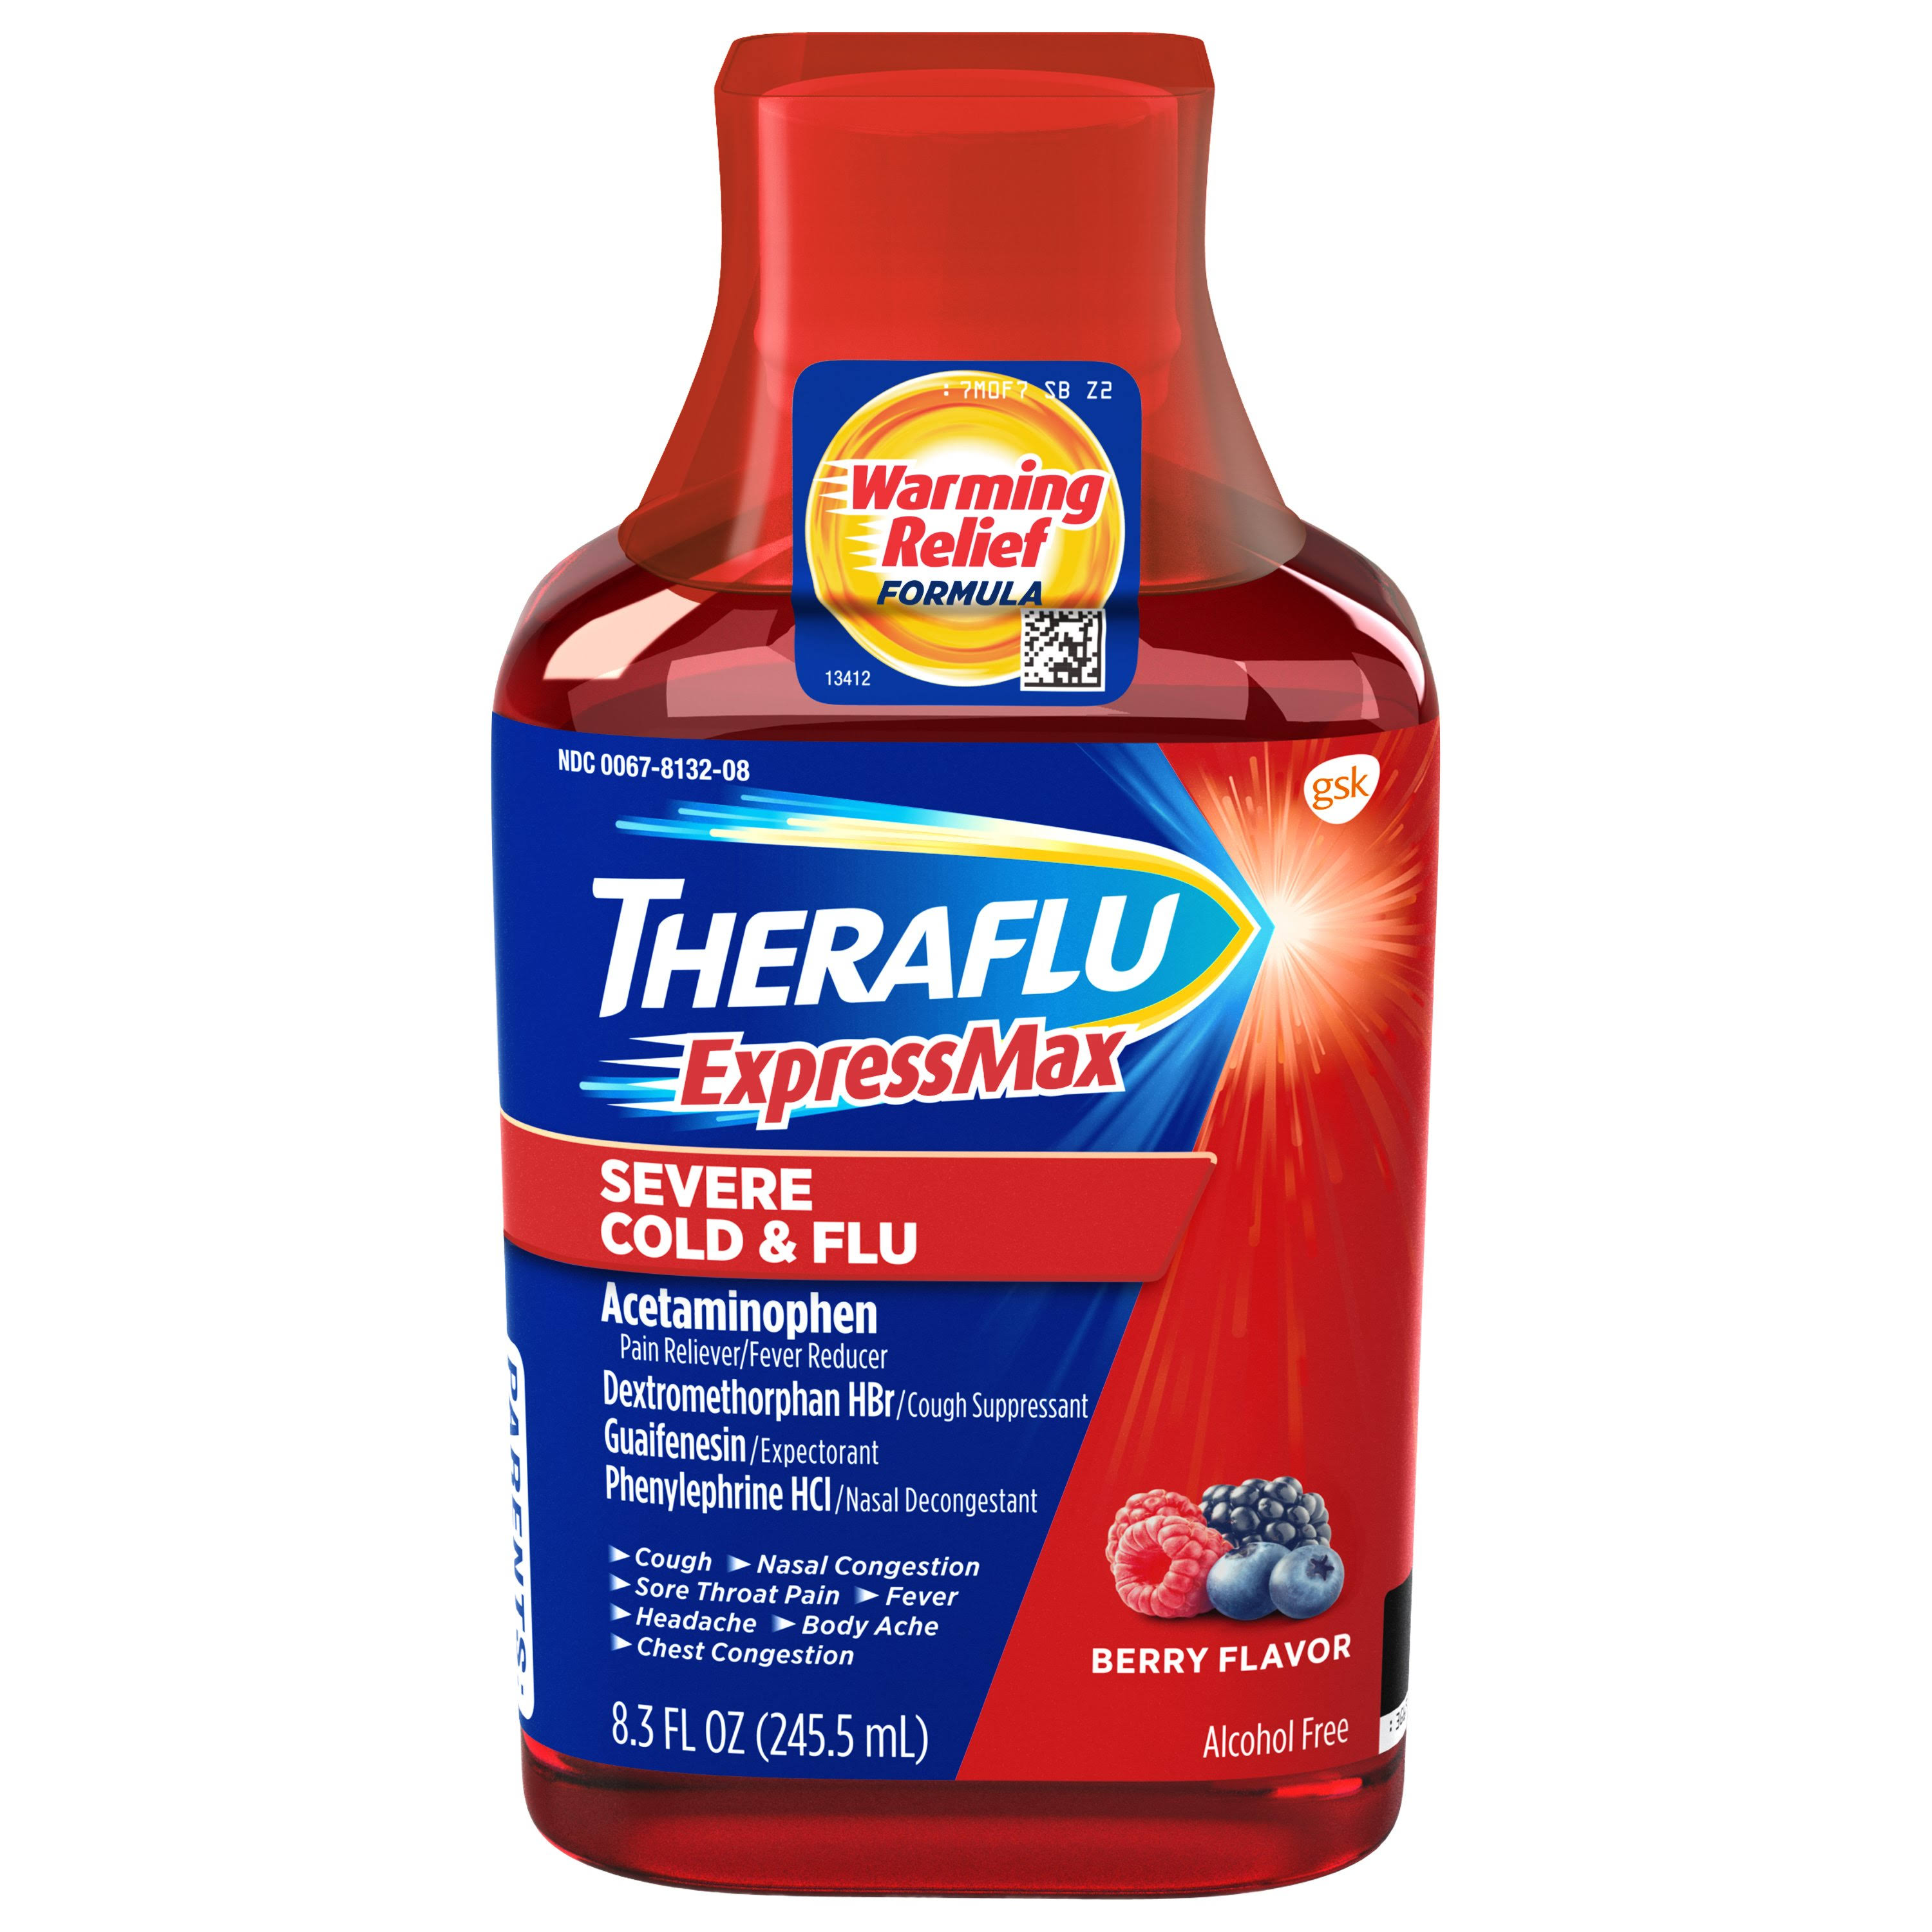 Theraflu Severe Cold and Flu Warming Relief Formula Syrup - Berry, 8.3oz